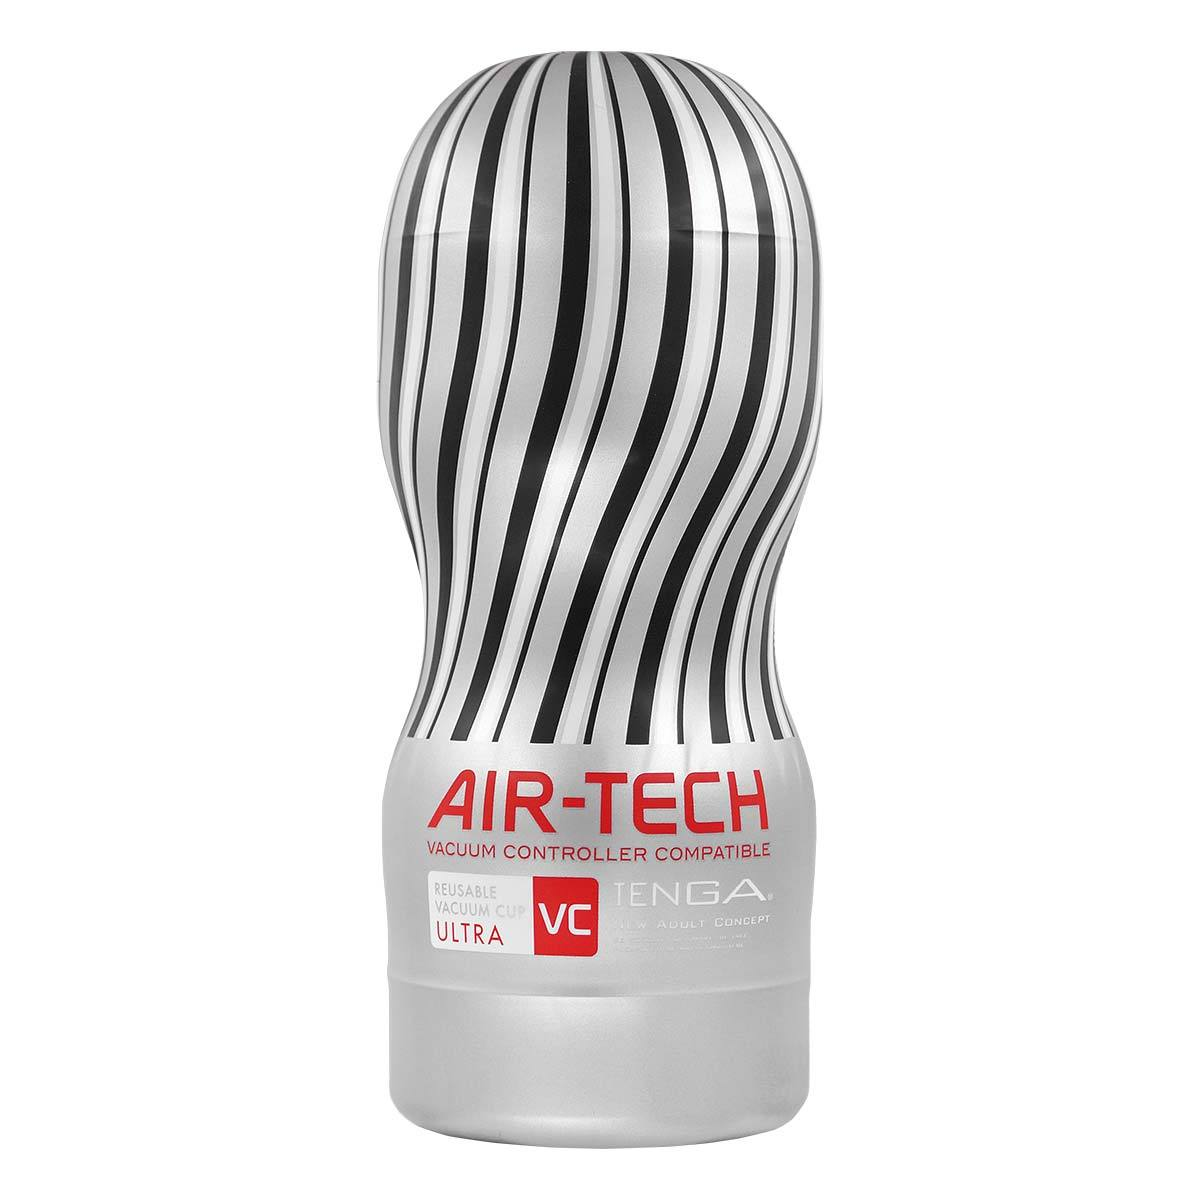 TENGA AIR-TECH REUSABLE VACUUM CUP VC ULTRA